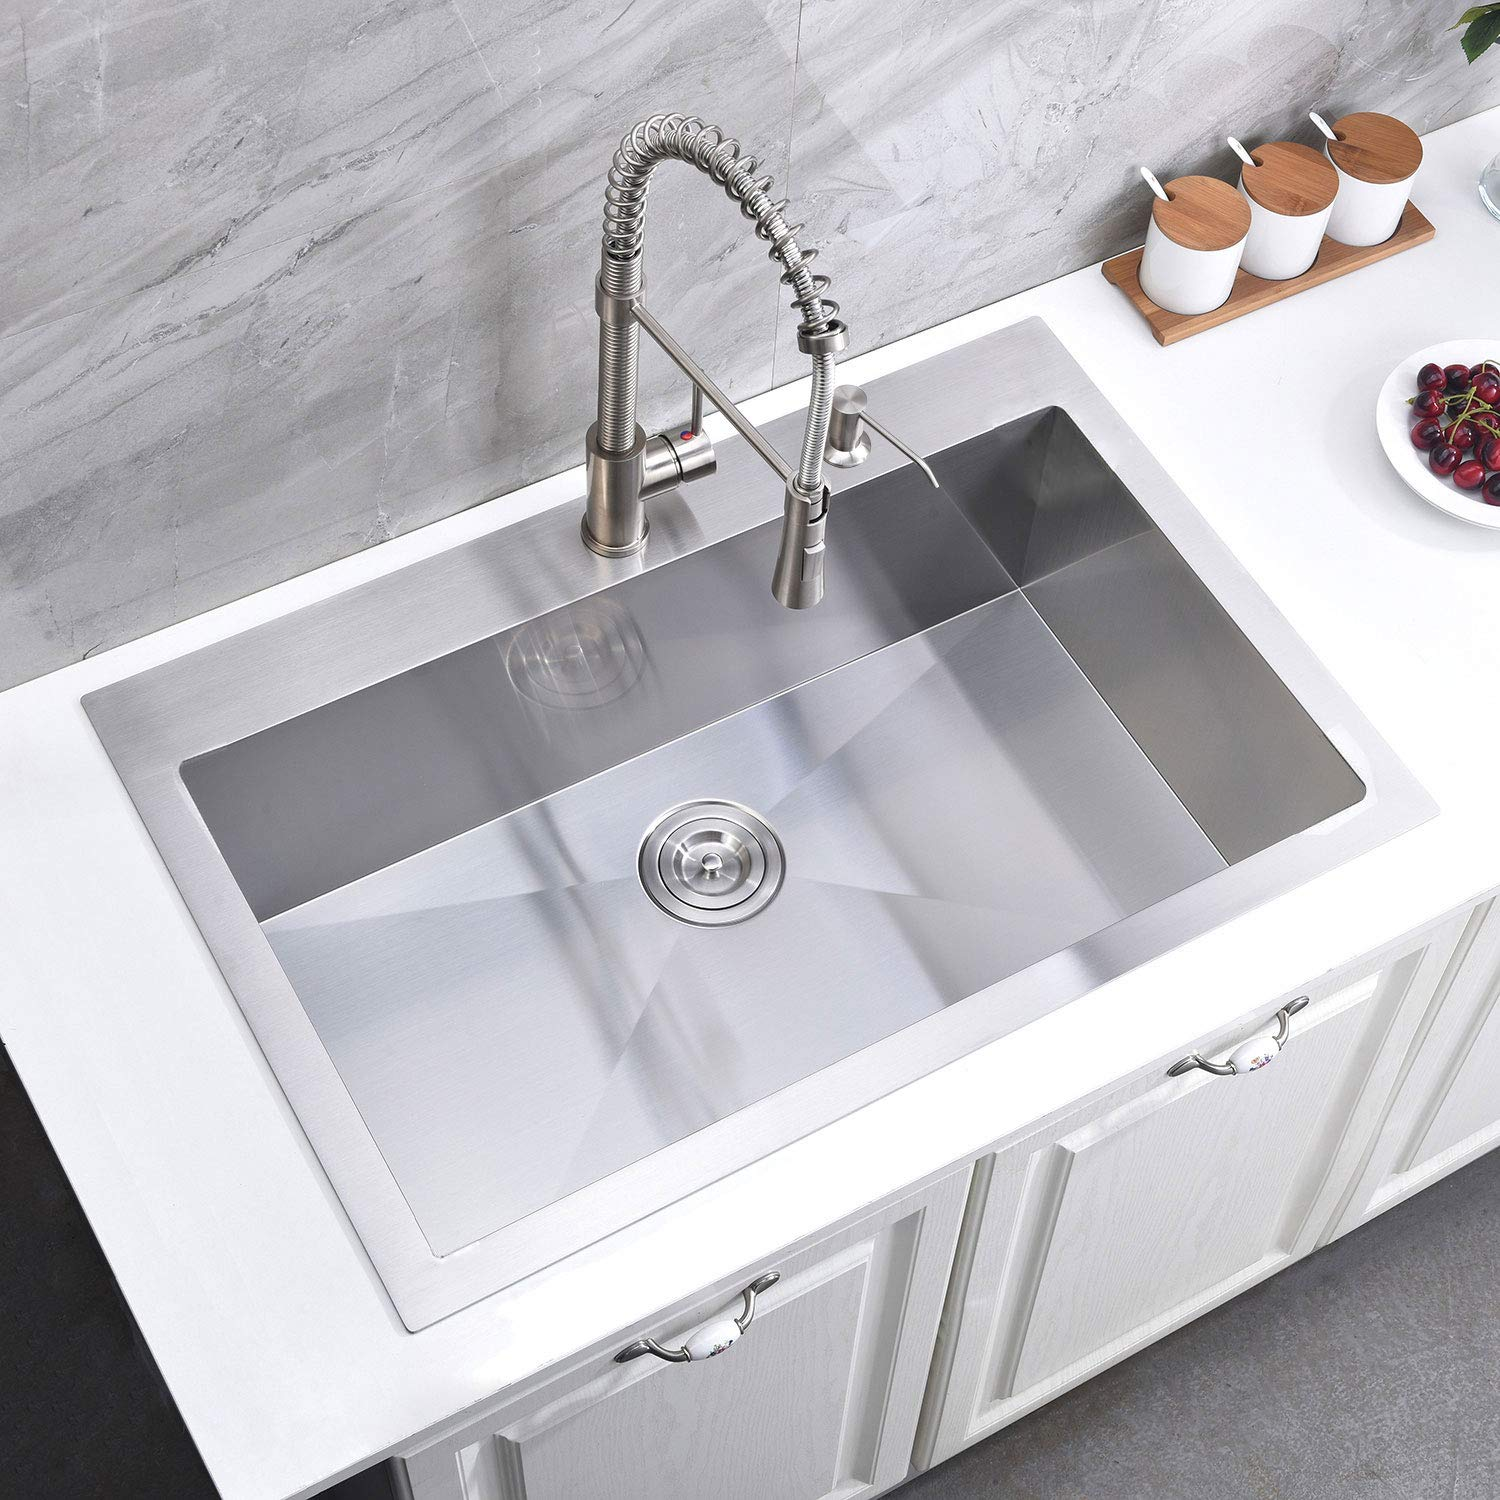 KINGO HOME Commercial 33''x 22'' Inch 10 Inch Extra Deep Handmade Top Mount T304 Stainless Steel Drop-In Single Bowl Kitchen Sink by KINGO HOME (Image #2)